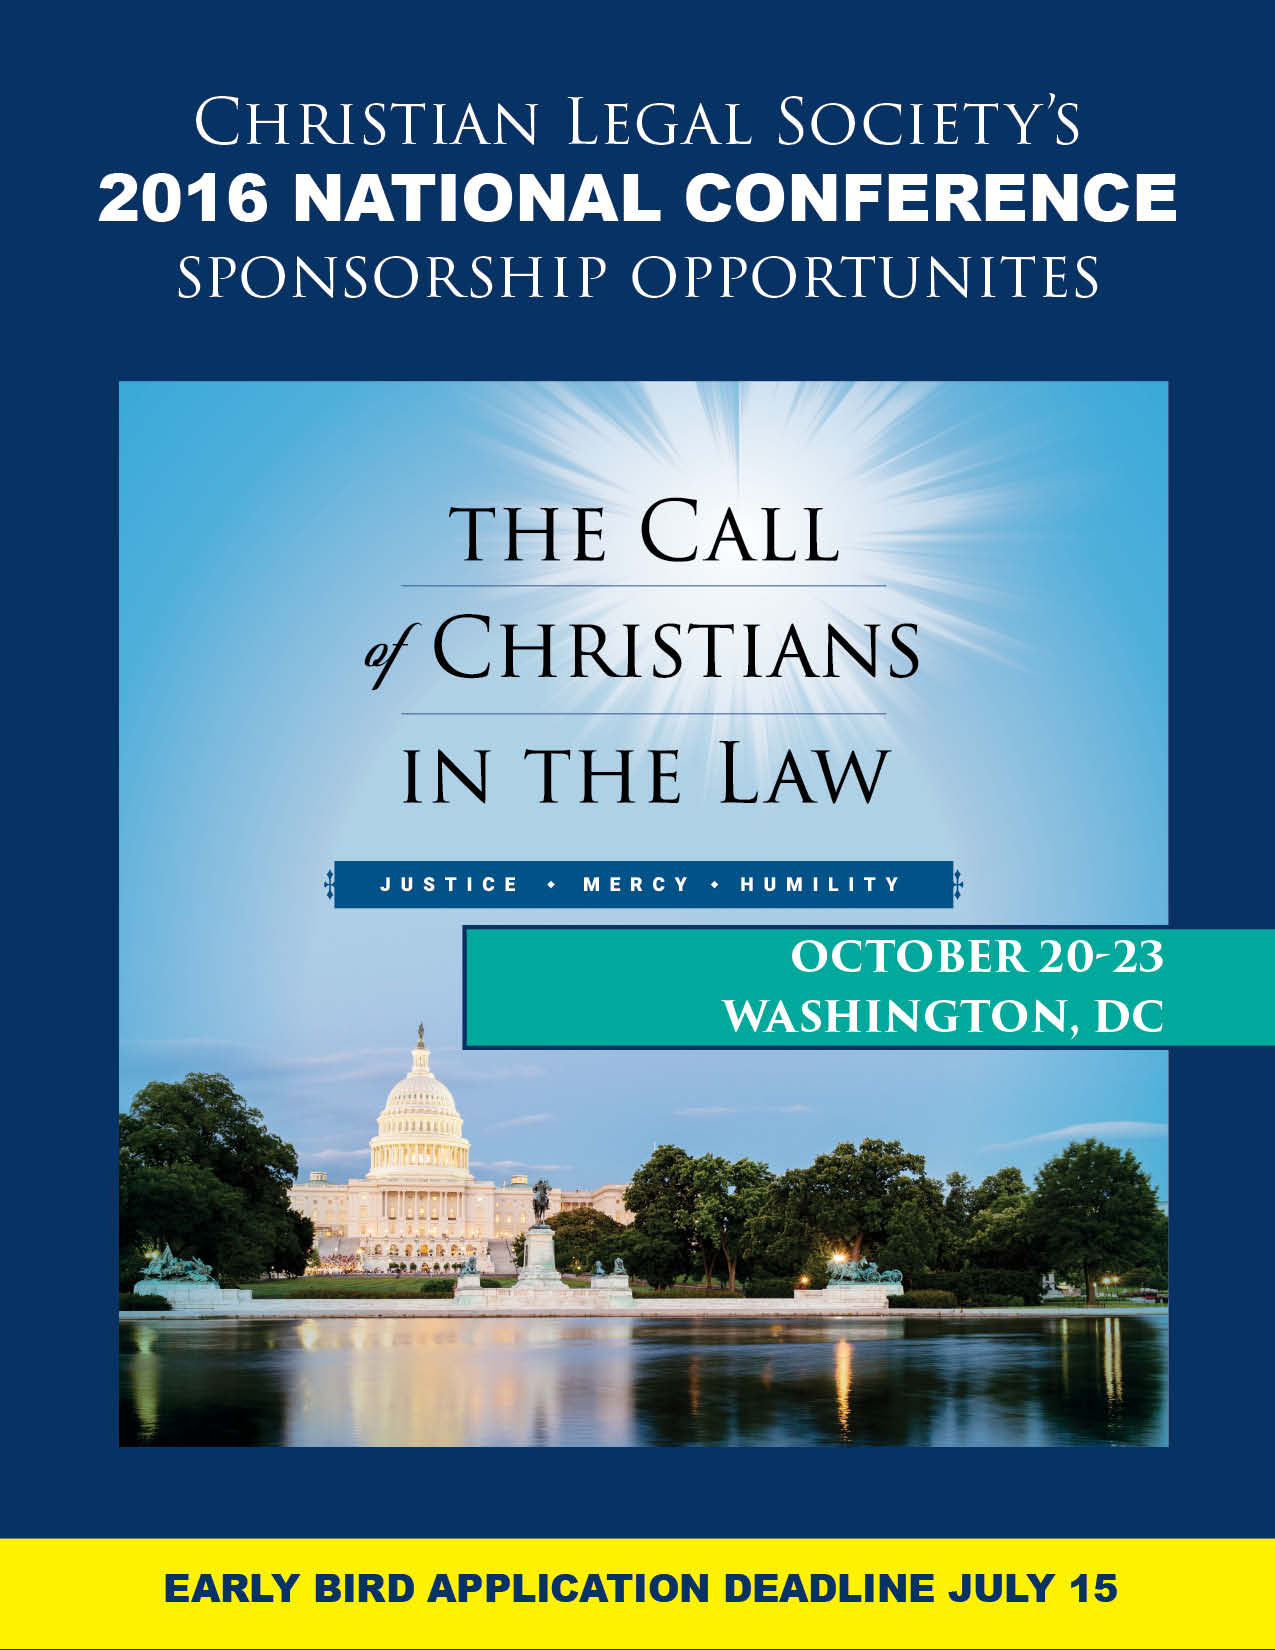 Christian Legal Society: 2016 Conference Sponsorship